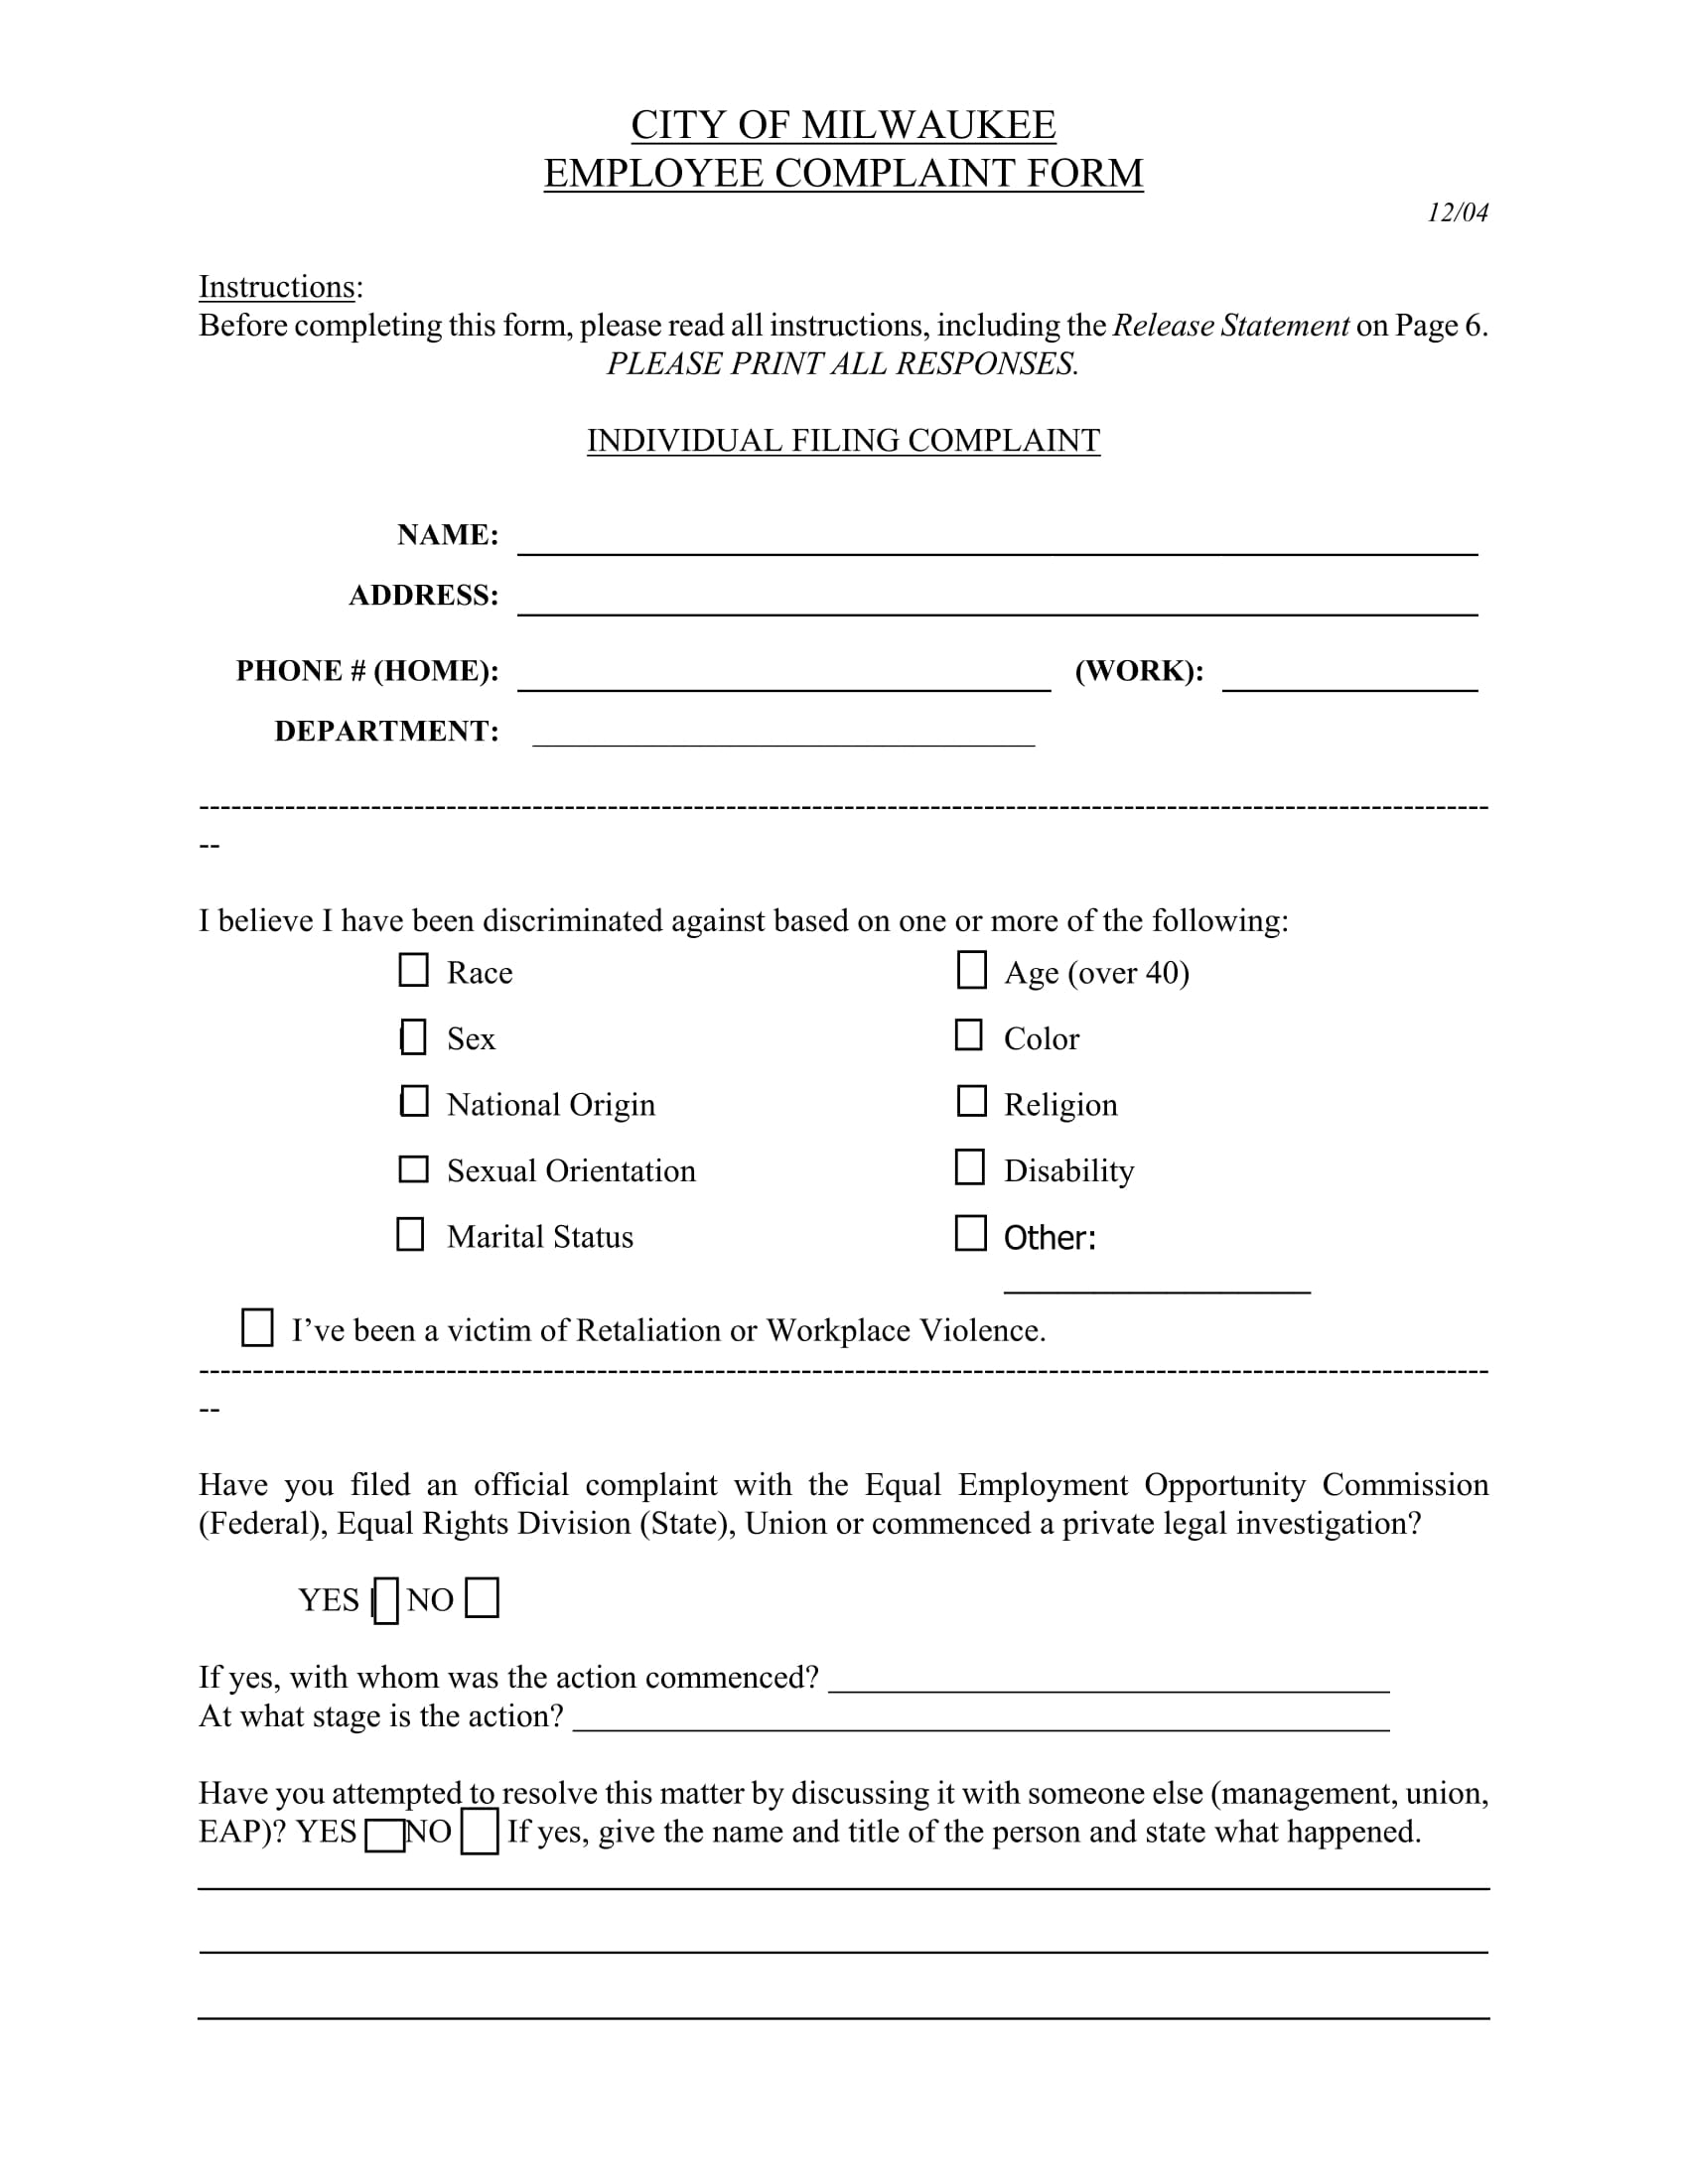 city employee complaint form 1